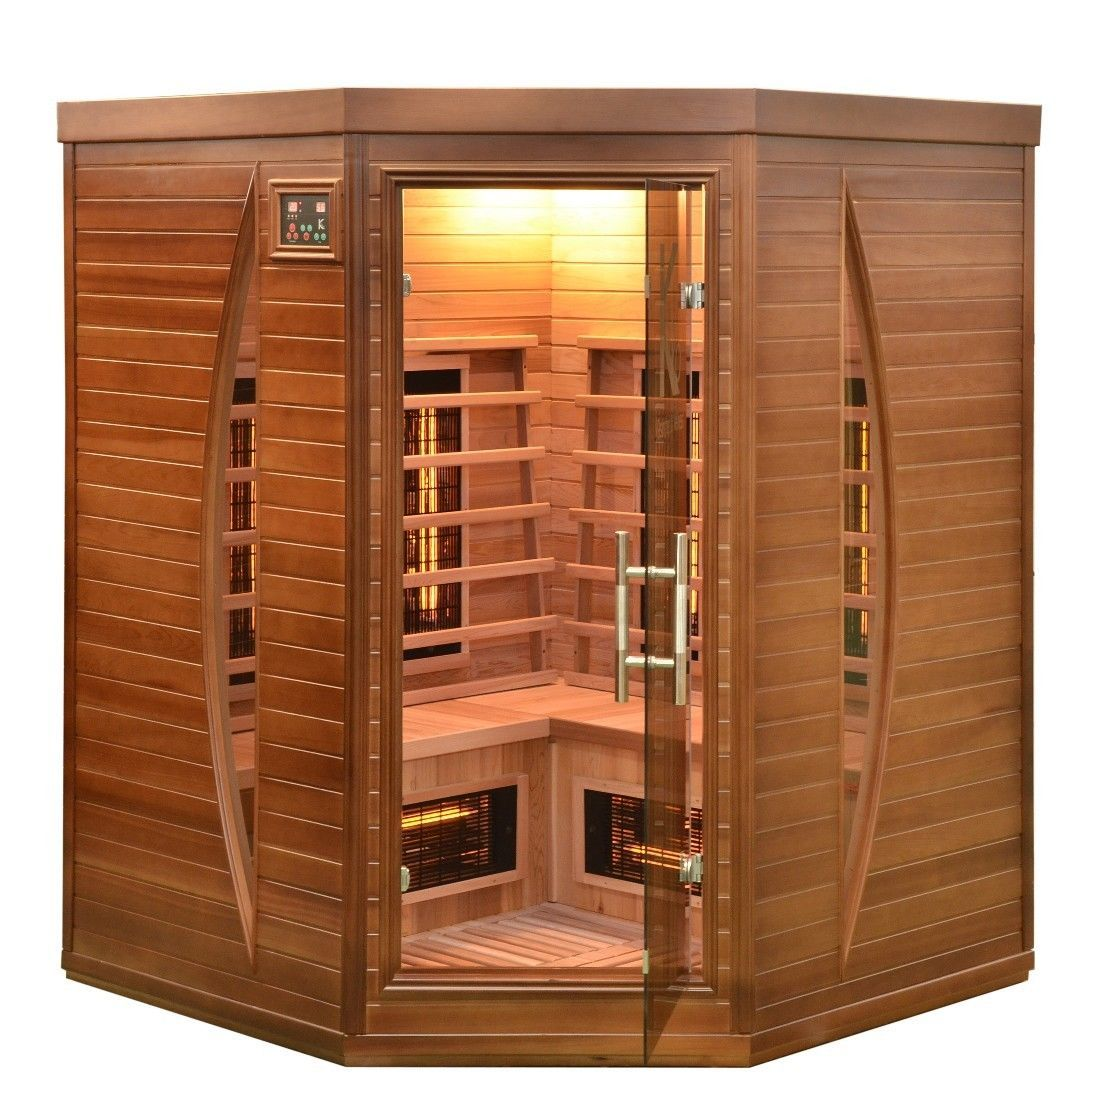 sauna infrarotkabine infrarot w rmekabine infrarotsauna zeder zedernholz neu ebay coole. Black Bedroom Furniture Sets. Home Design Ideas